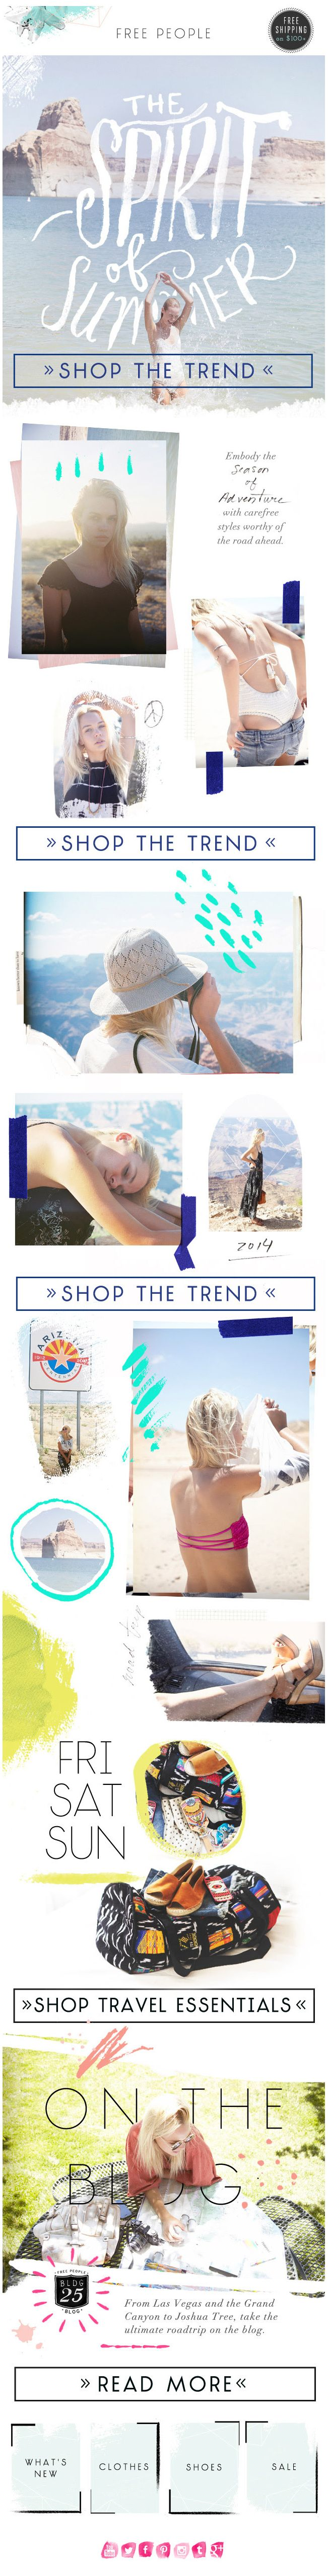 Free People : Editorial newsletter